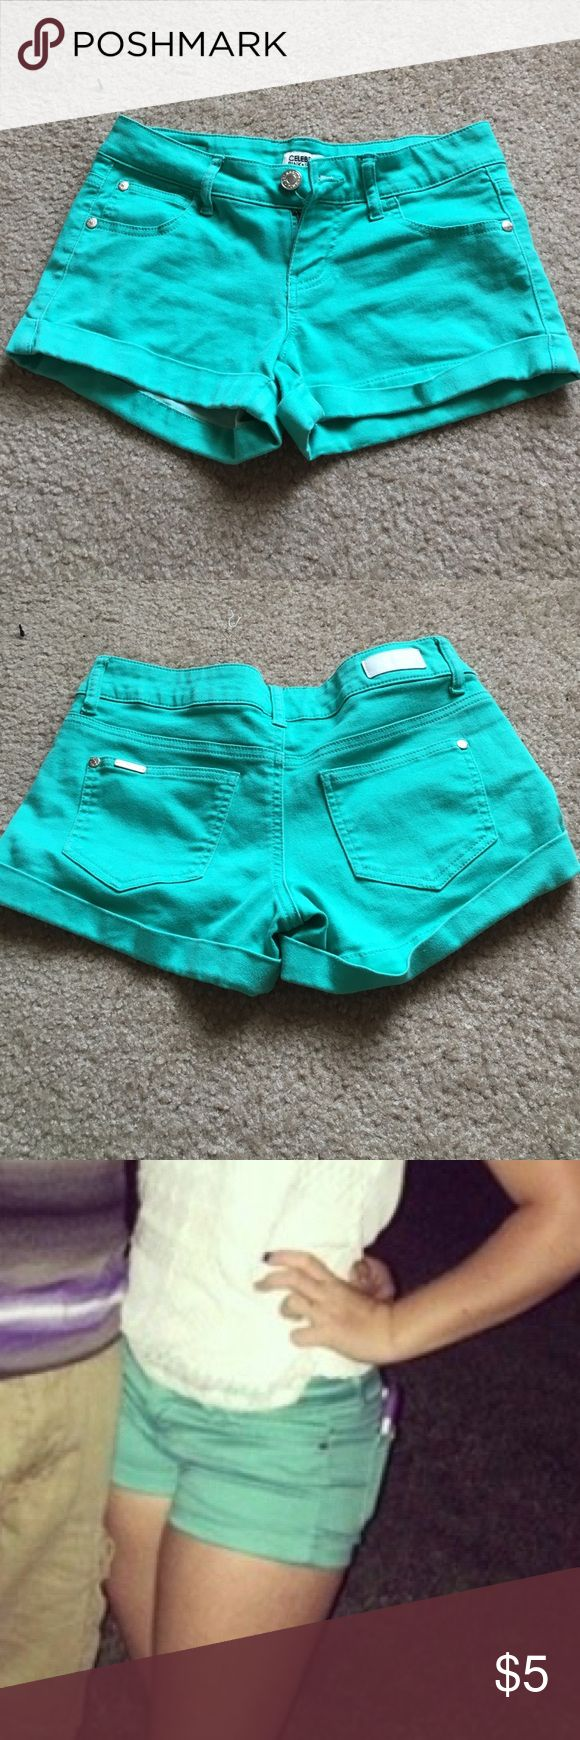 turquoise shorts comfy shorts, great for summer! Celebrity Pink Shorts Jean Shorts